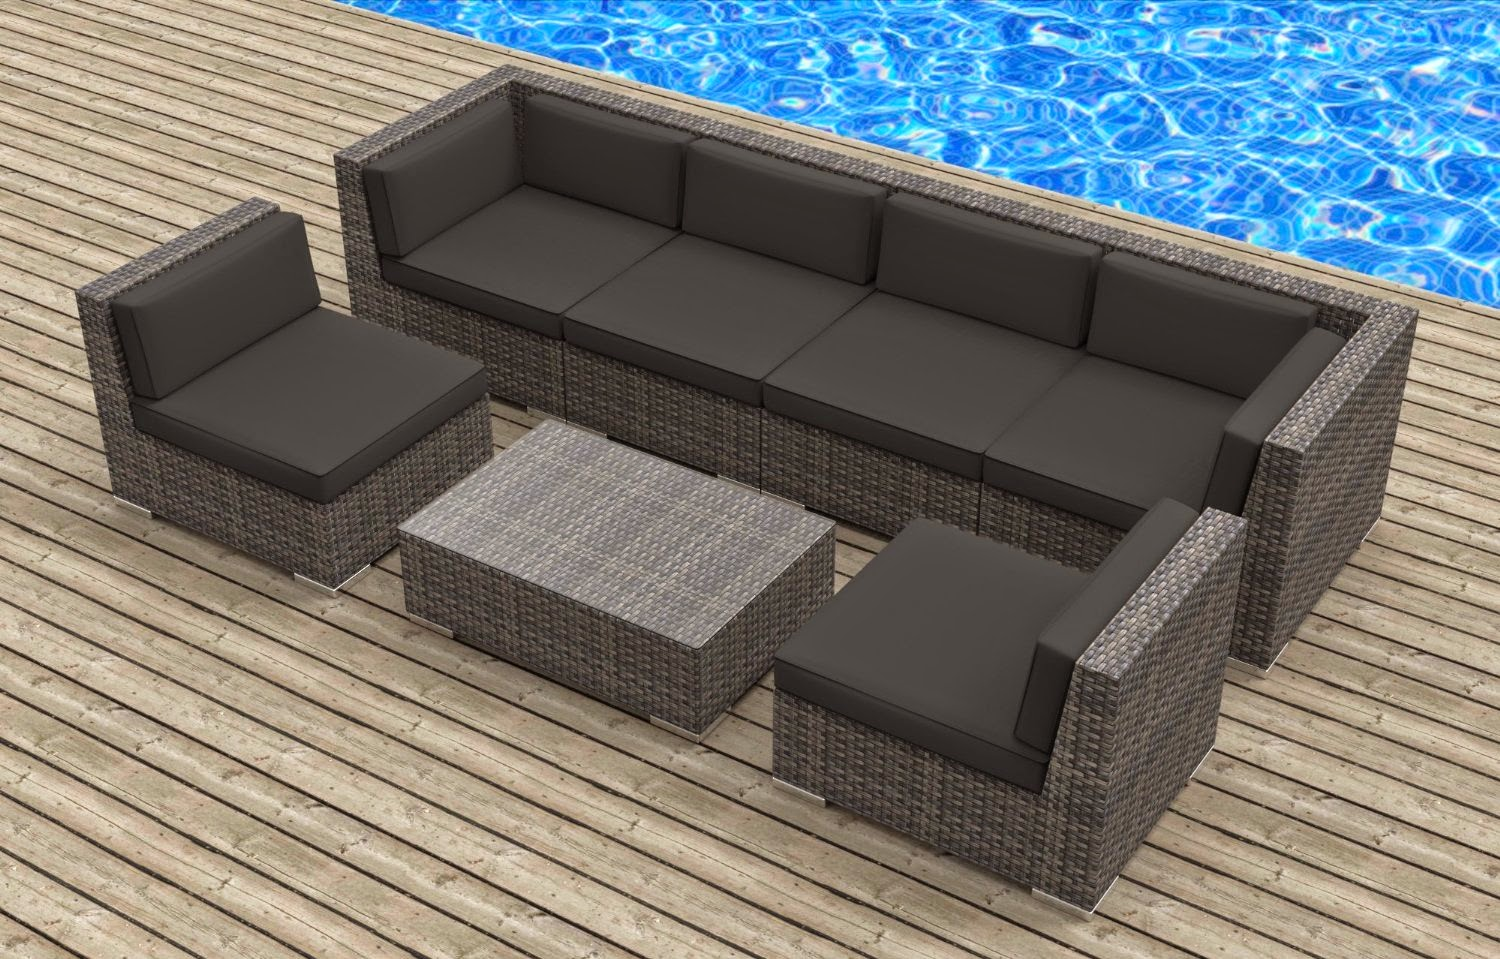 Outdoor Patio Furniture Sofa